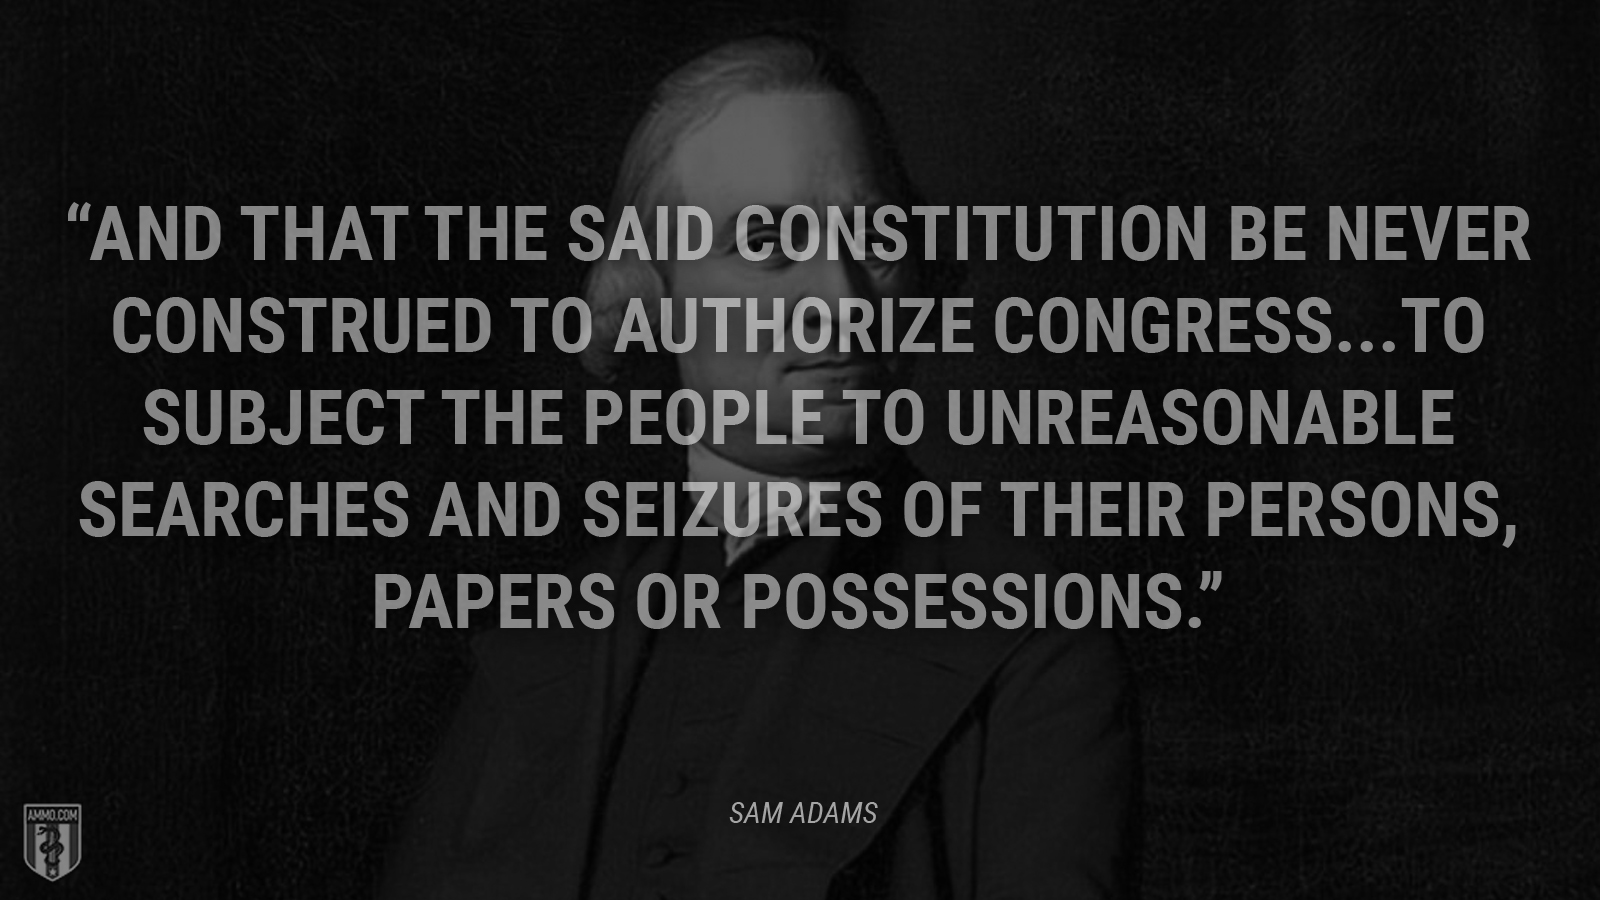 """And that the said Constitution be never construed to authorize Congress...to subject the people to unreasonable searches and seizures of their persons, papers or possessions."" - Sam Adams"